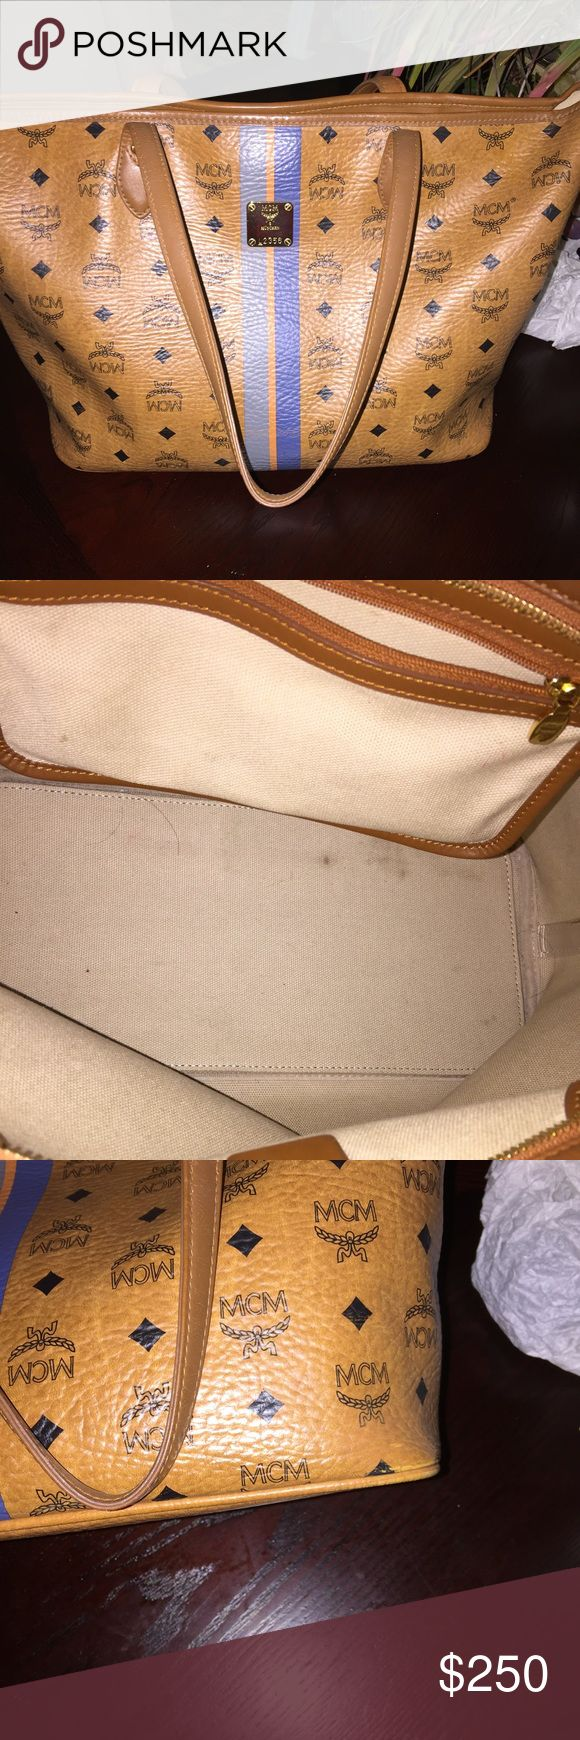 Authentic mcm bag Great condition no smell pet free large size MCM Bags Totes